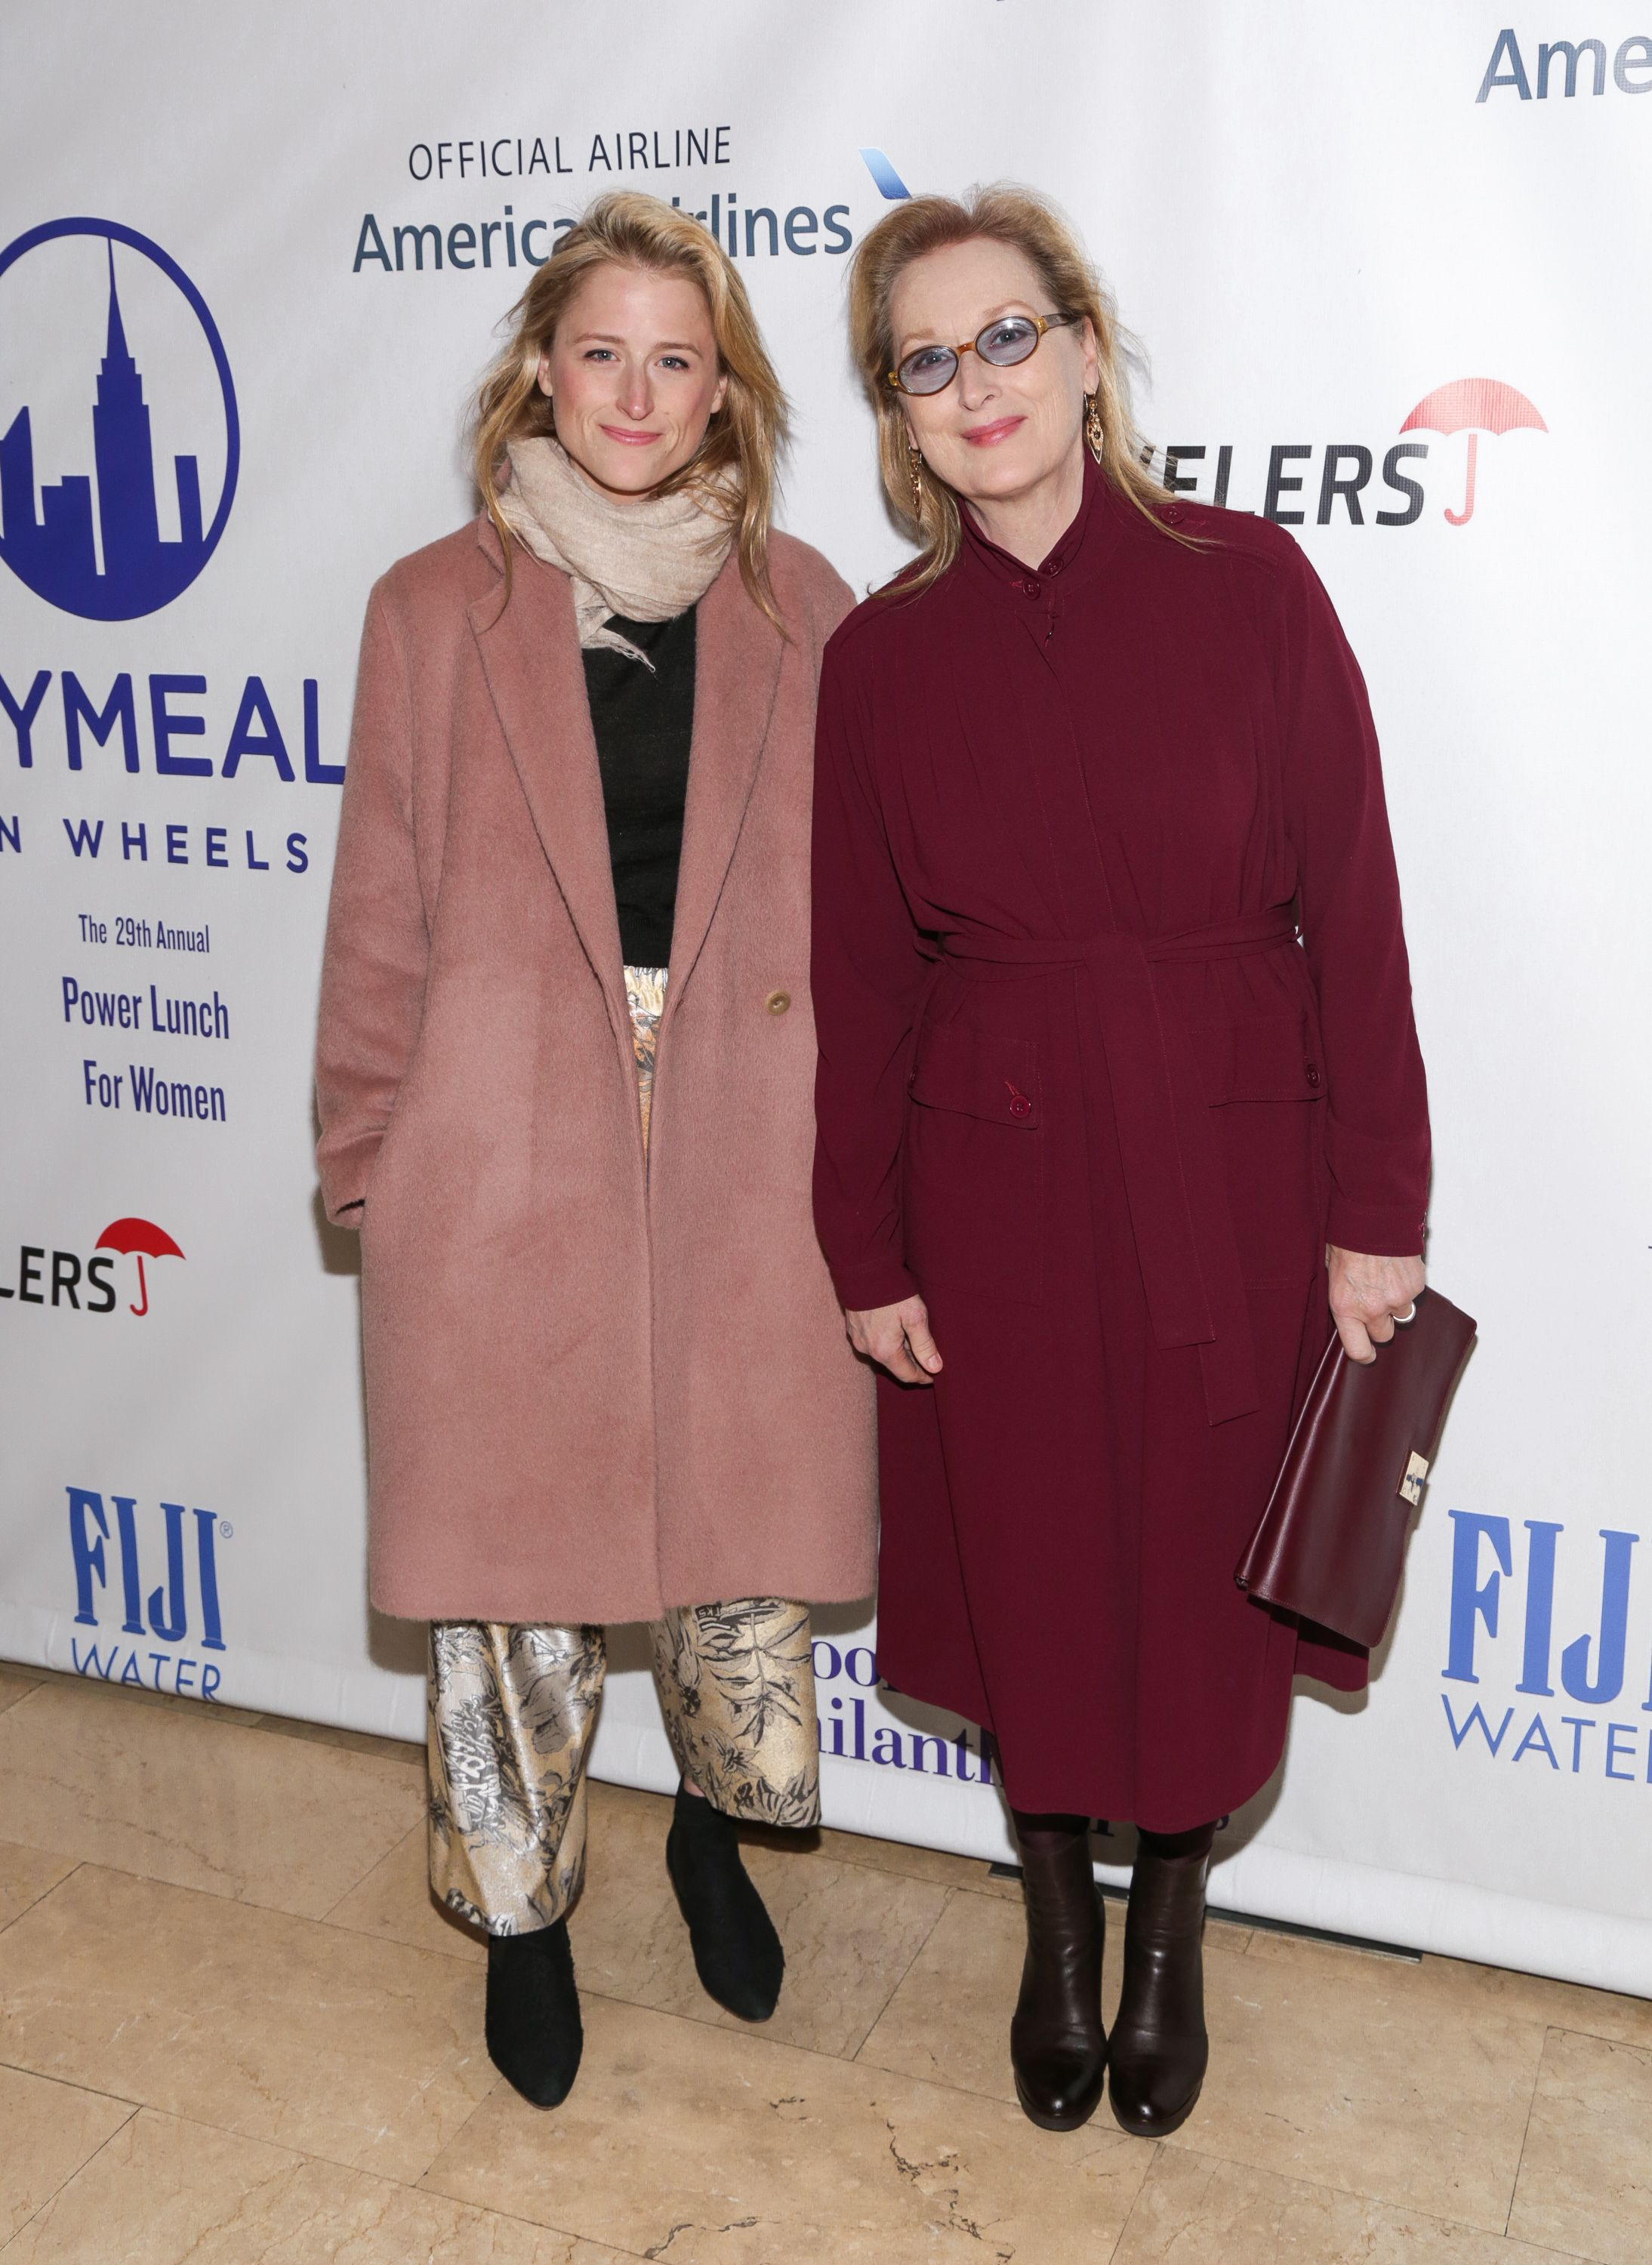 Her daughter Mamie Gummer is pregnant with her first child.